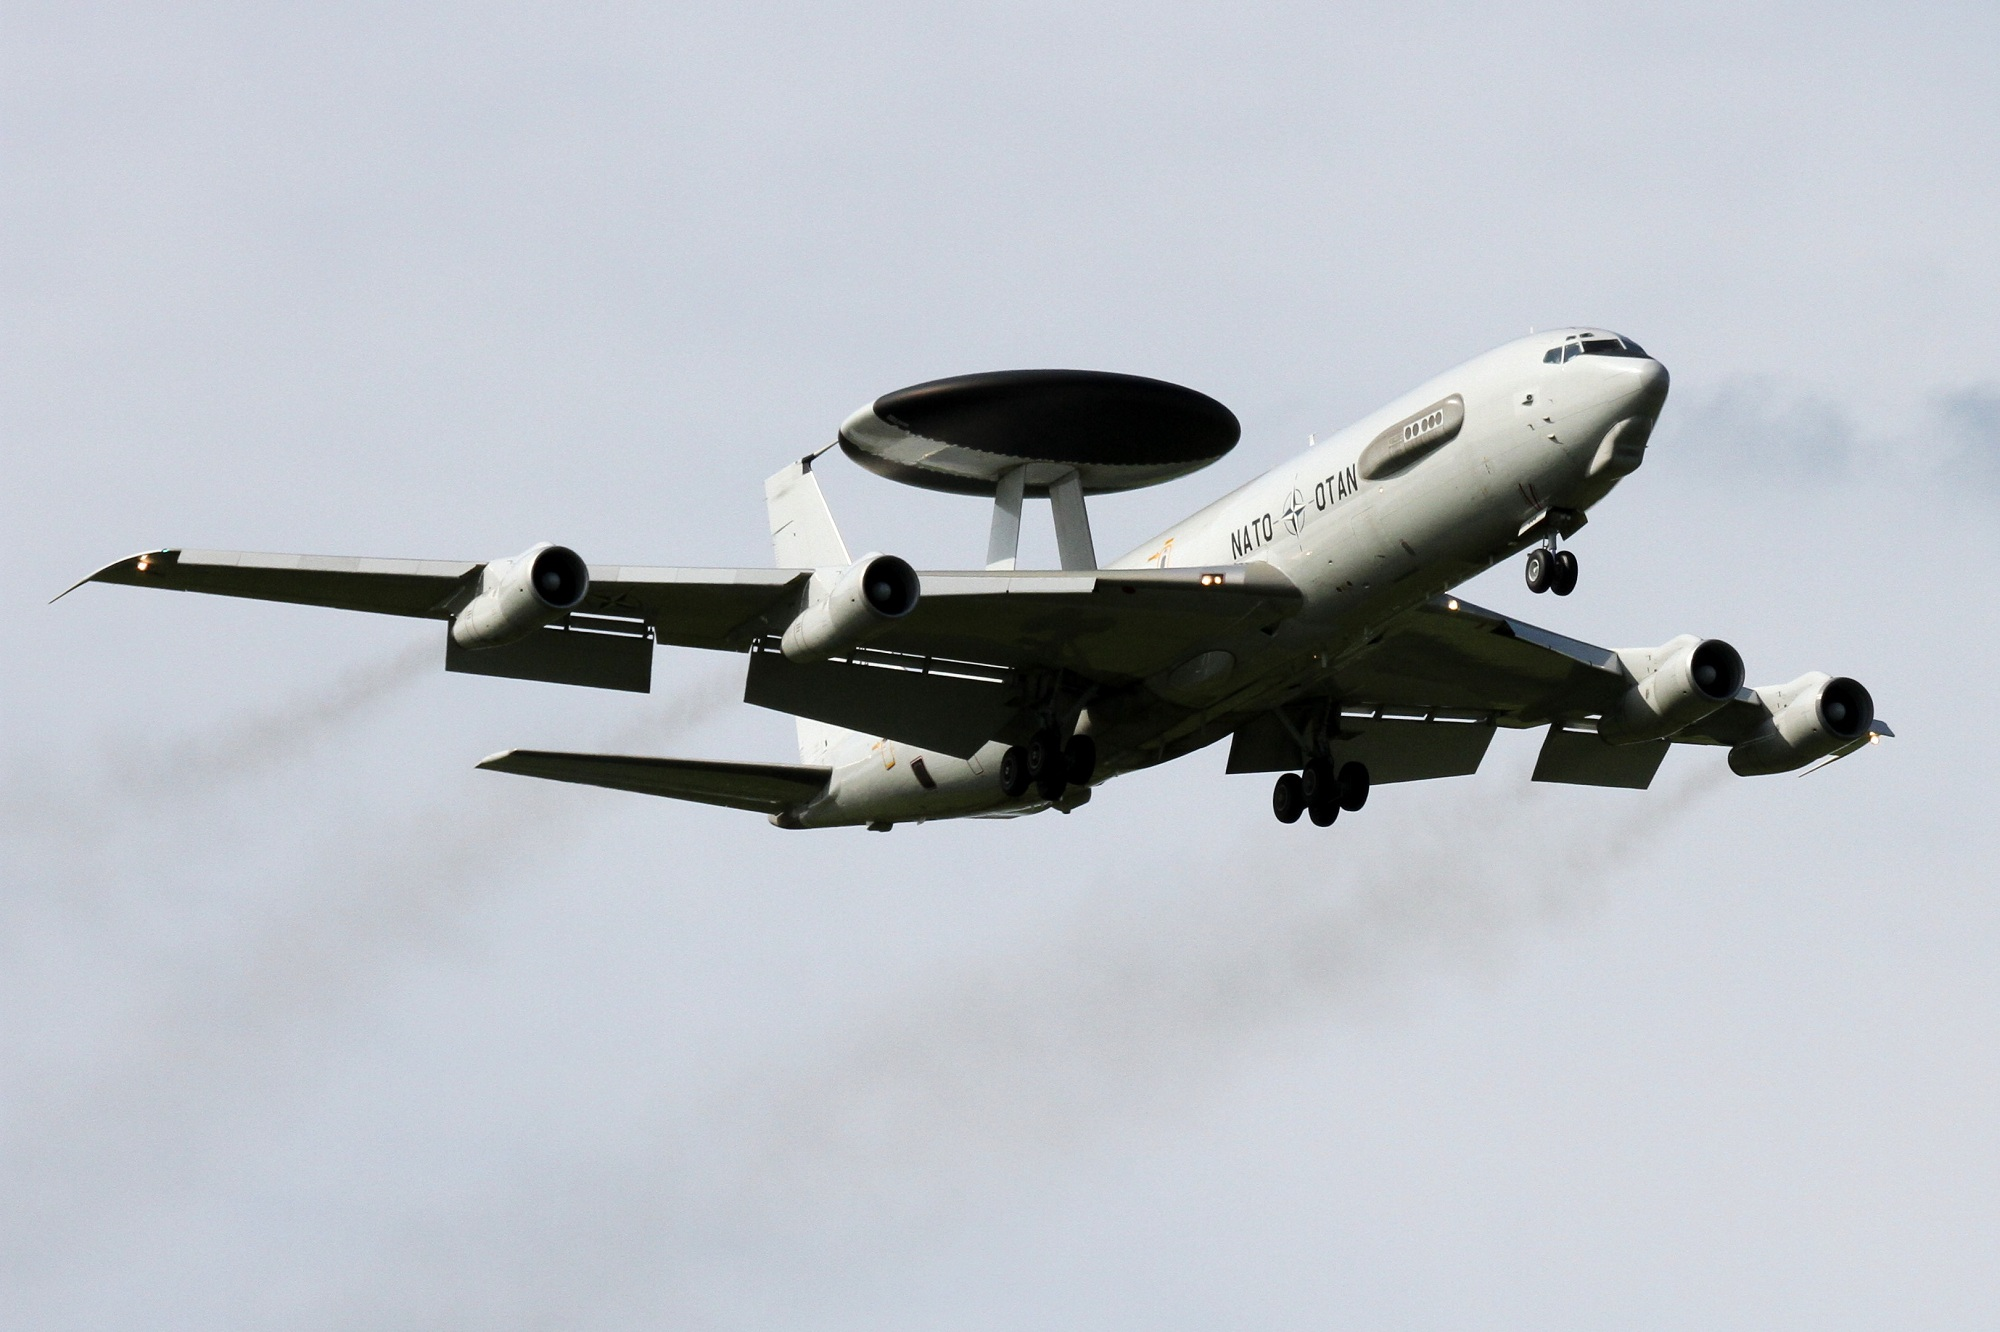 Luchtvaart NATO AWACS Airborne Warning and Control System Radarvliegtuig